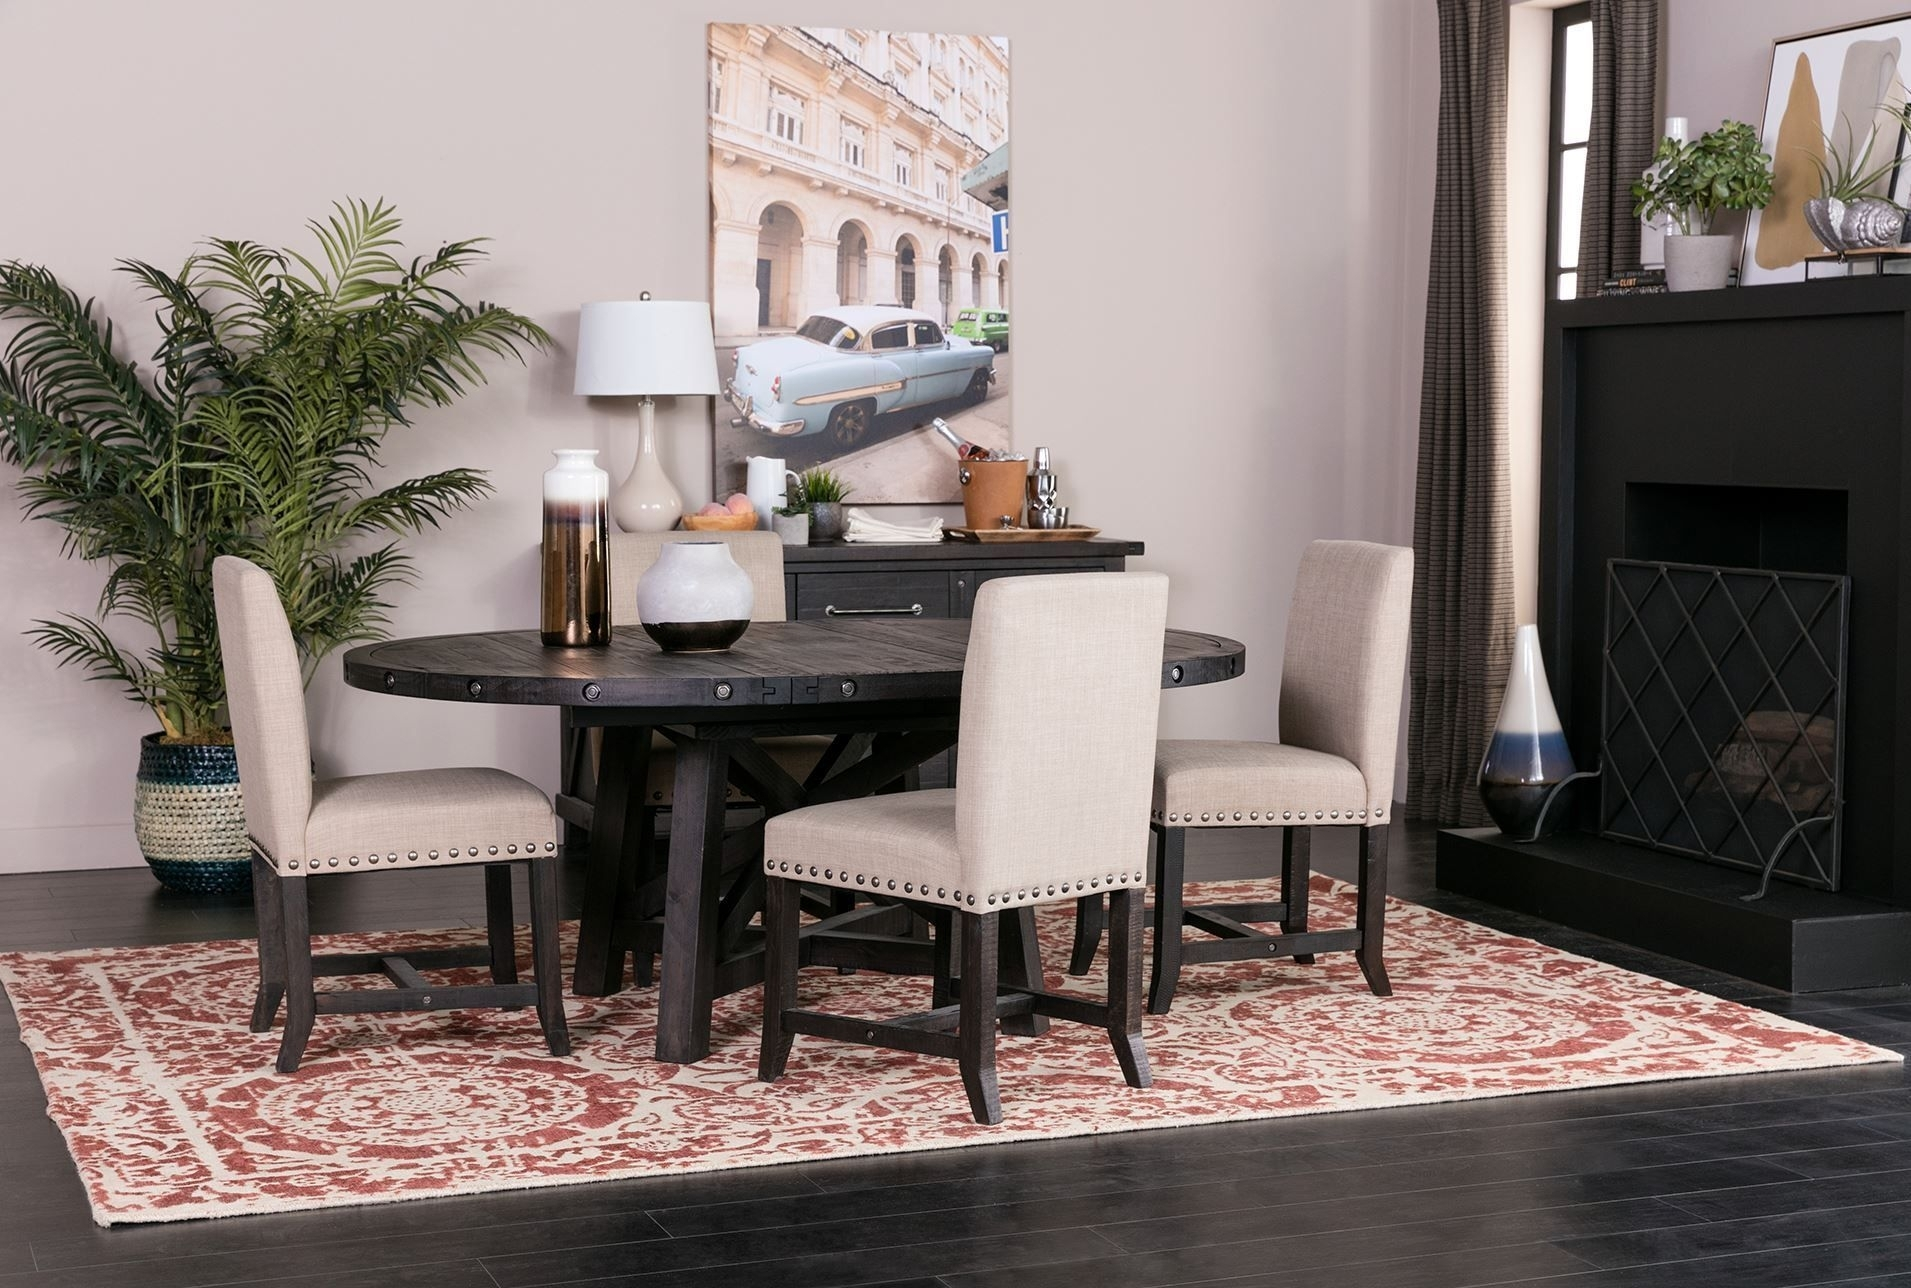 Jaxon 5 Piece Round Dining Set W/upholstered Chairs | Round Dining Inside Most Recently Released Jaxon 5 Piece Round Dining Sets With Upholstered Chairs (View 4 of 20)